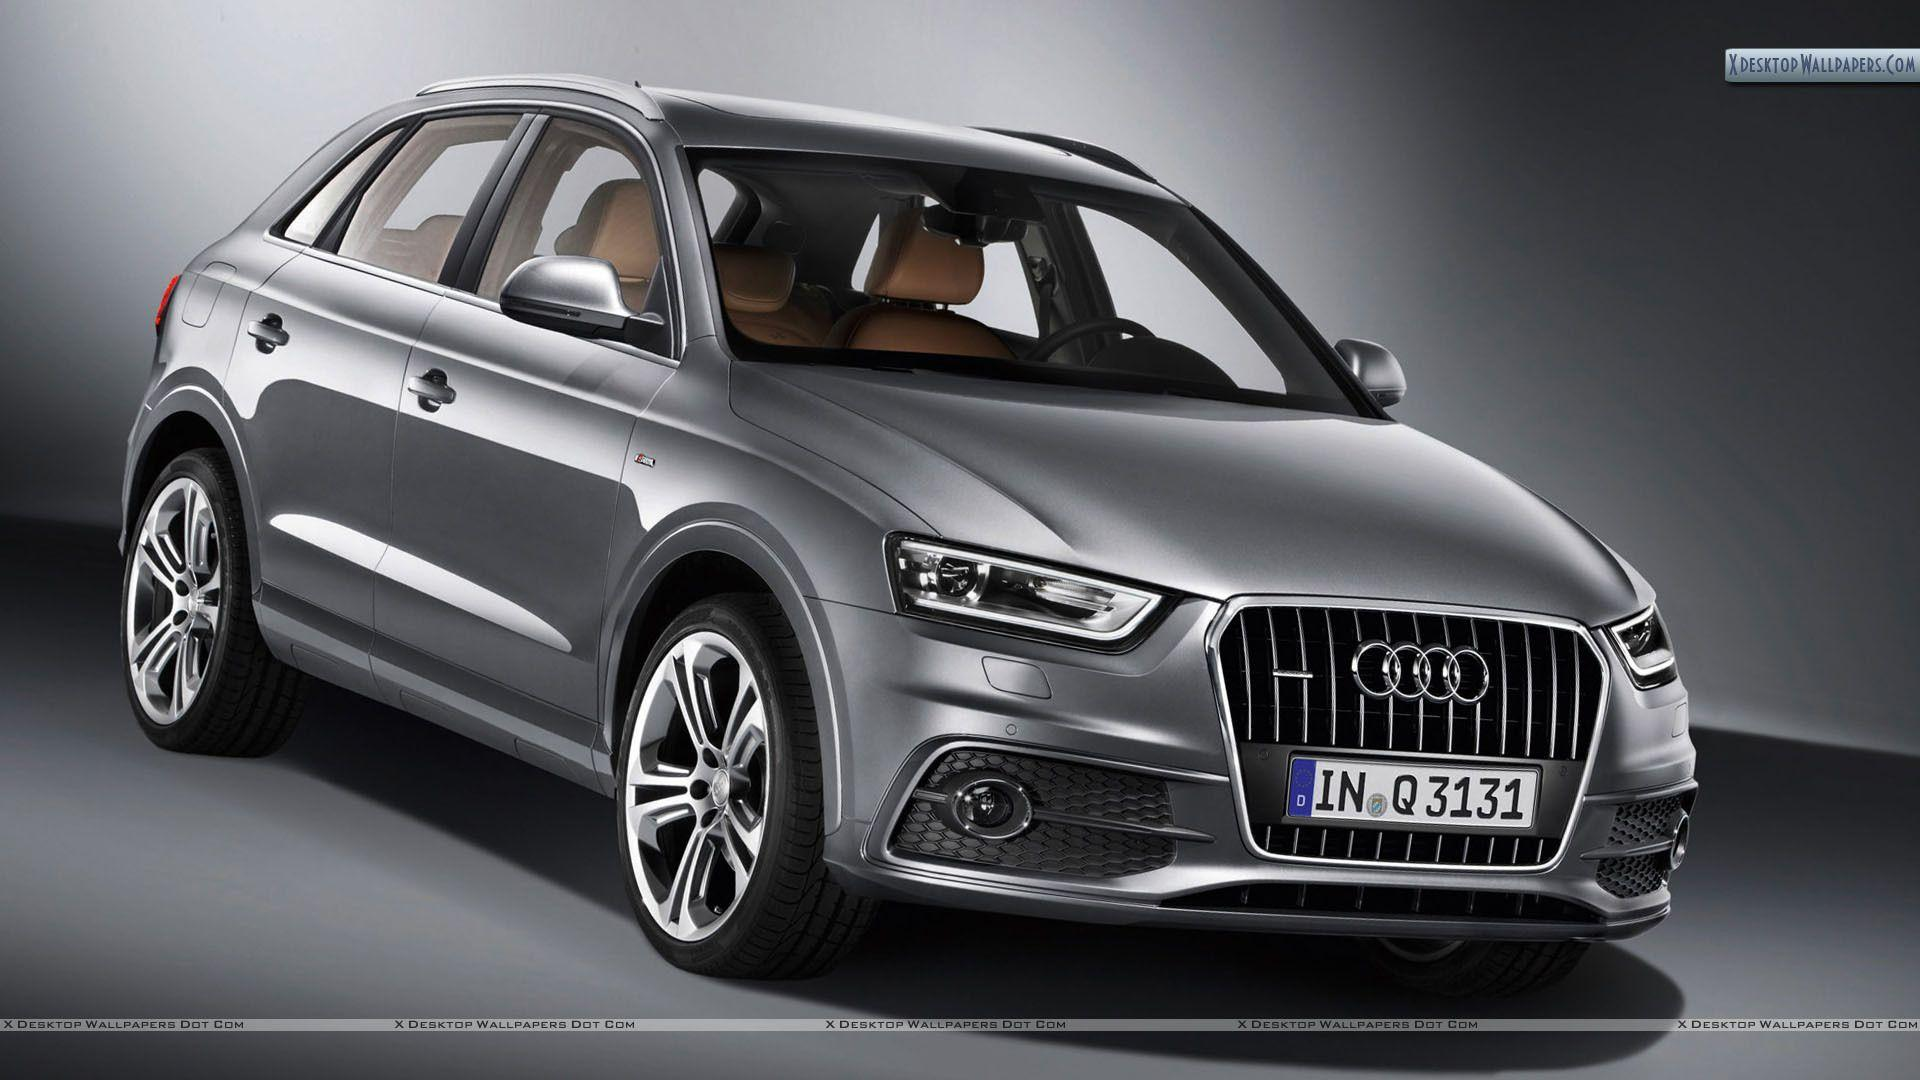 Audi q3 car on the road wallpapers and images - wallpapers ...